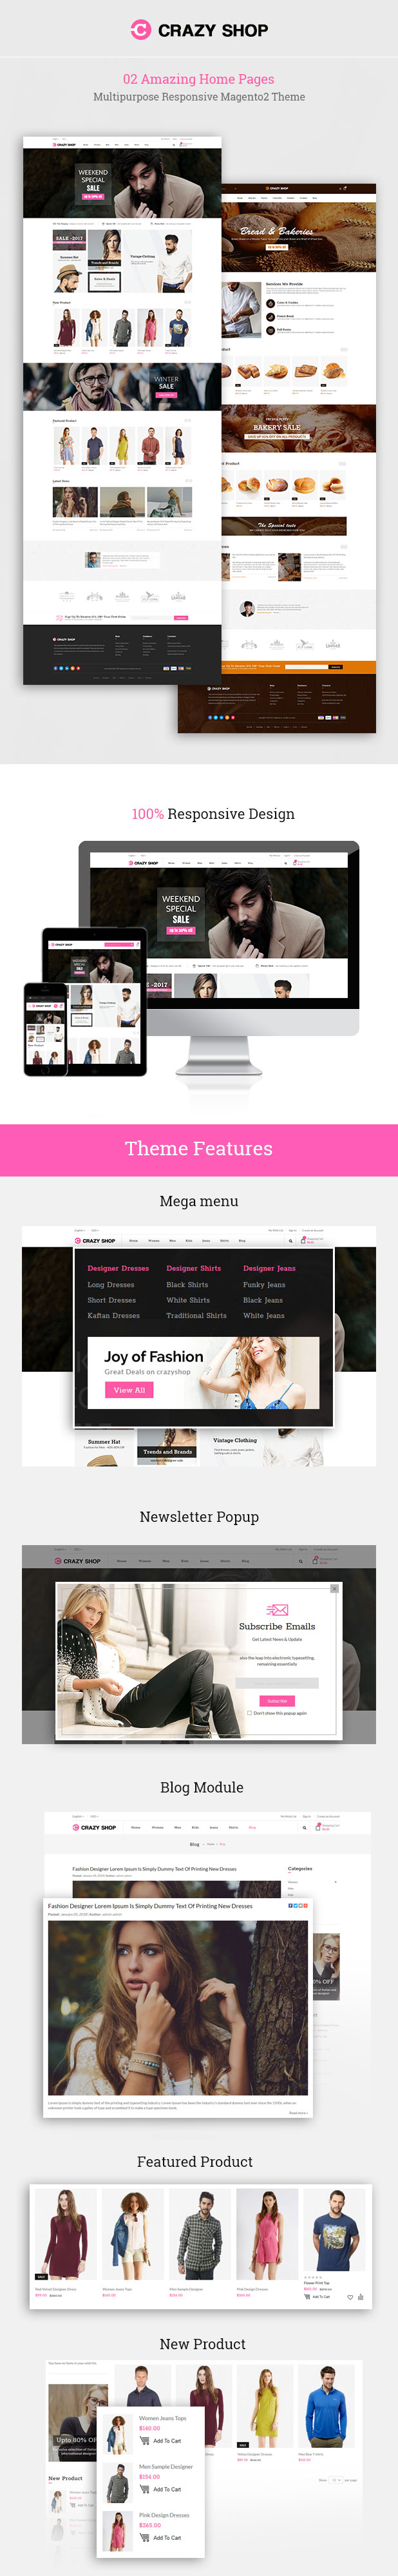 Crazyshop Multipurpose Responsive Magento2 Theme | Fashion Store | Watch Store | Food Stor - 1